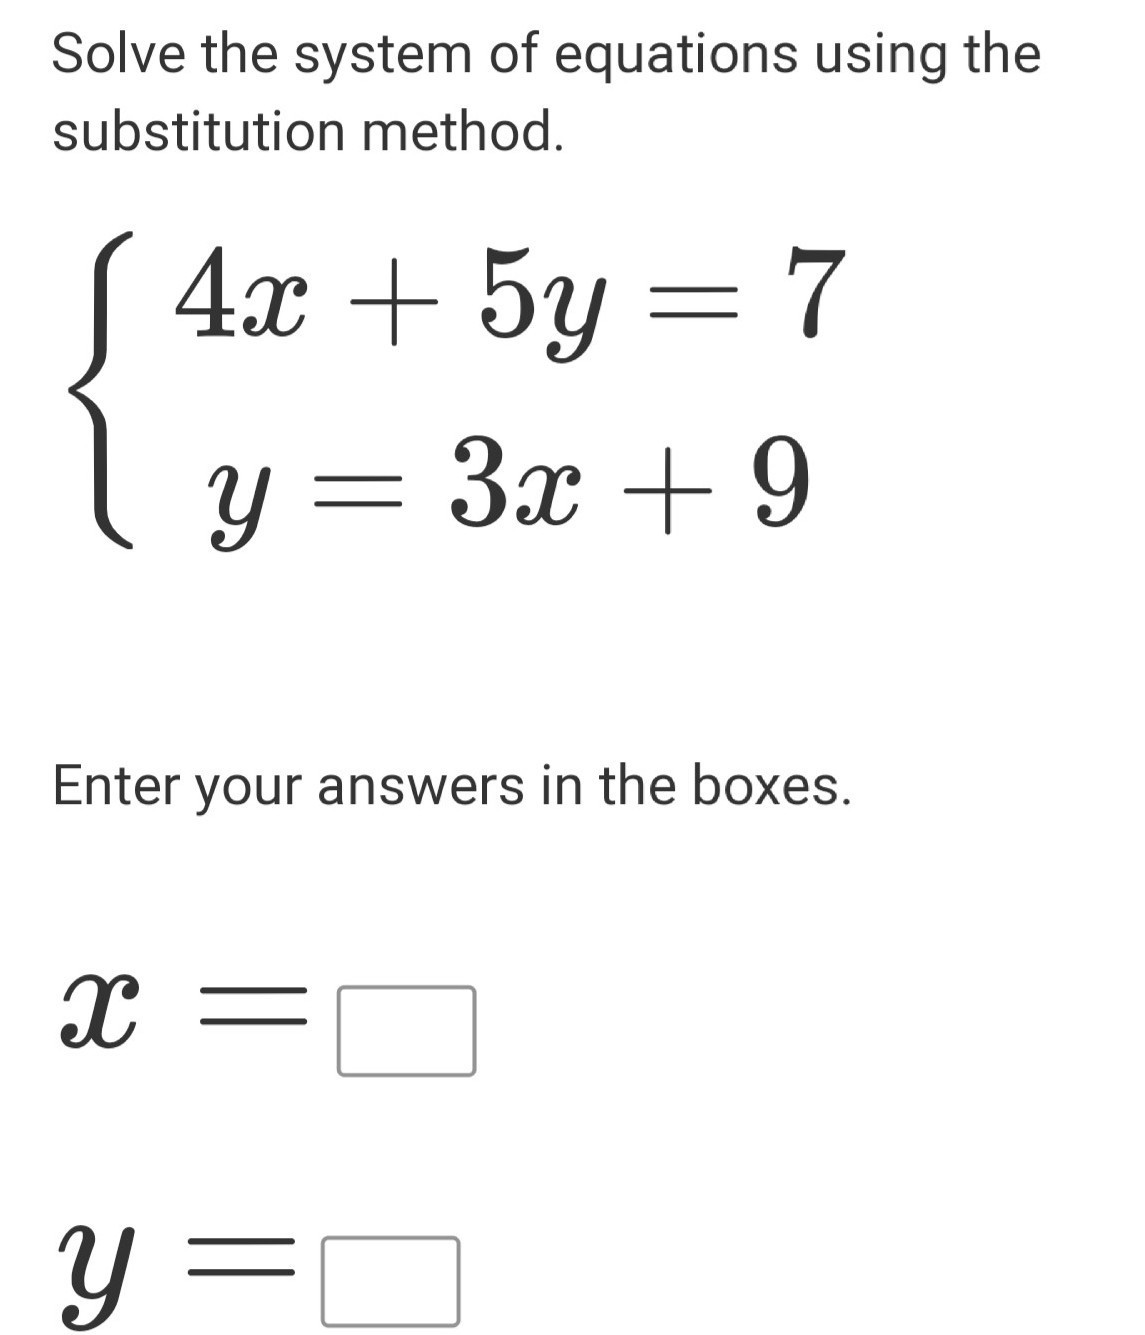 Solve The System Of Equations Using The Substitution